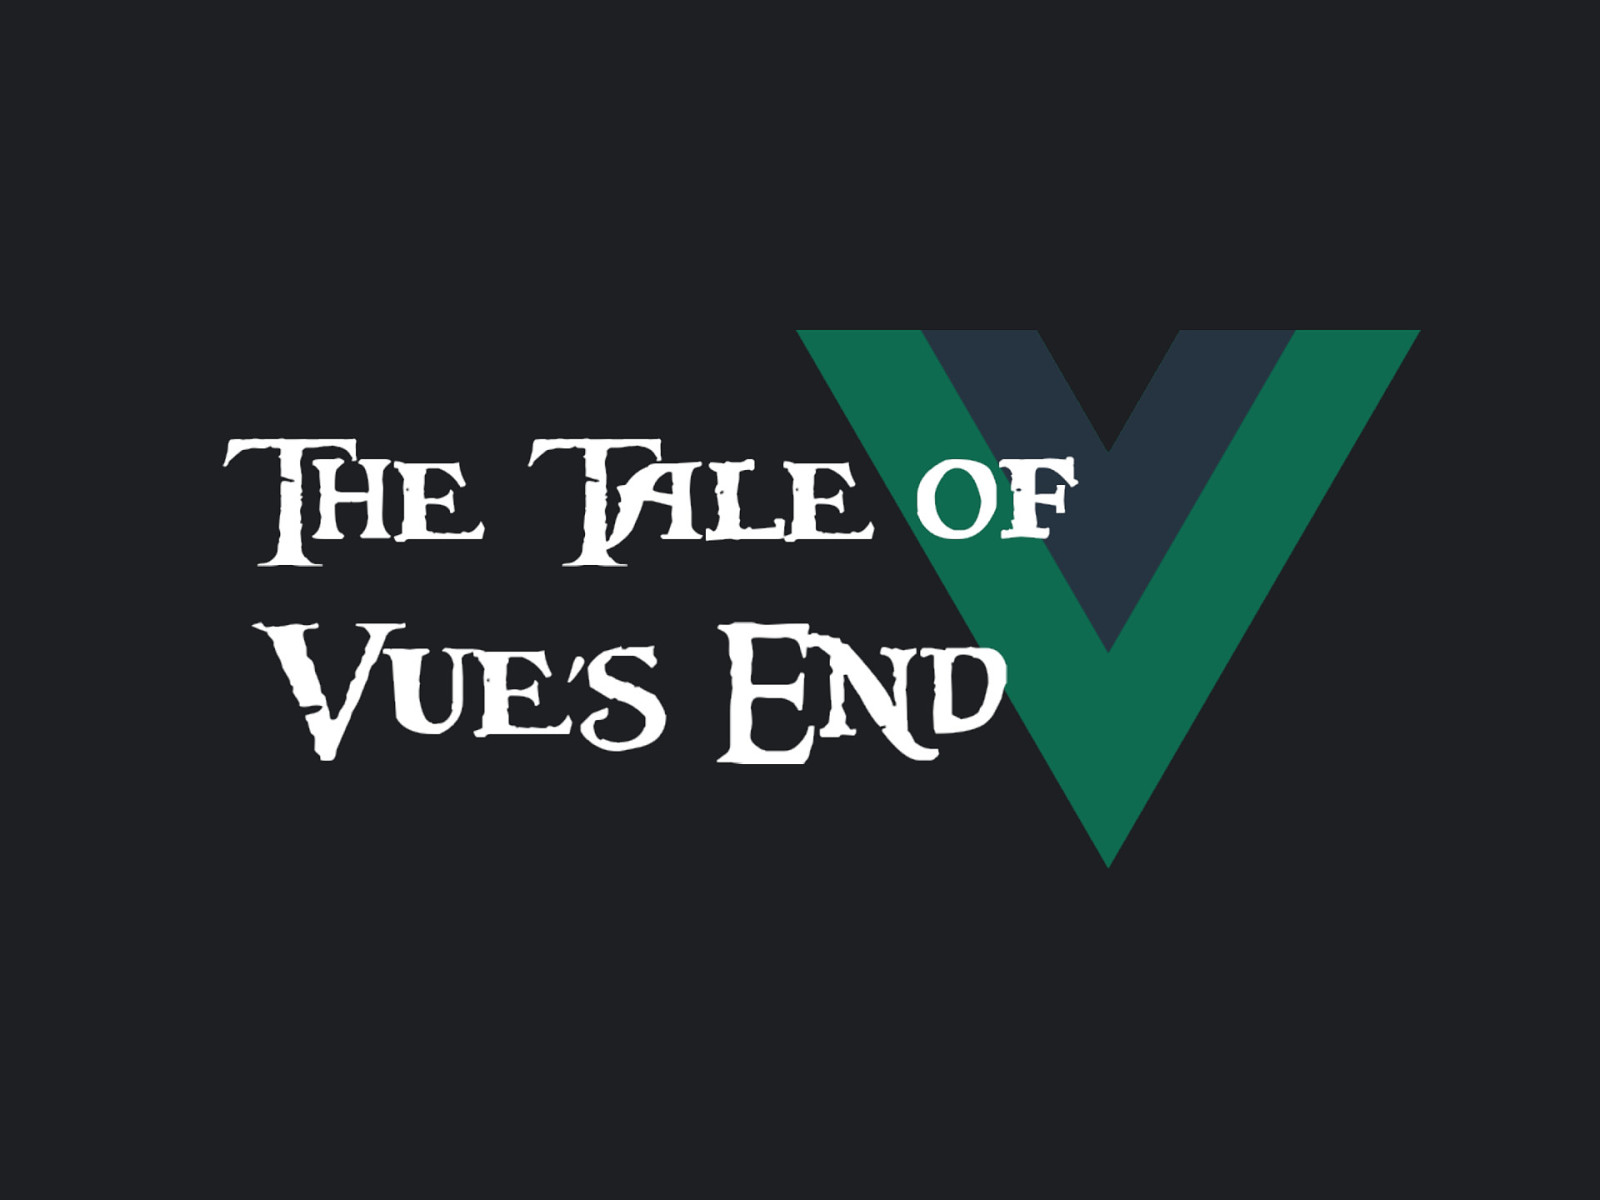 At Vue's End